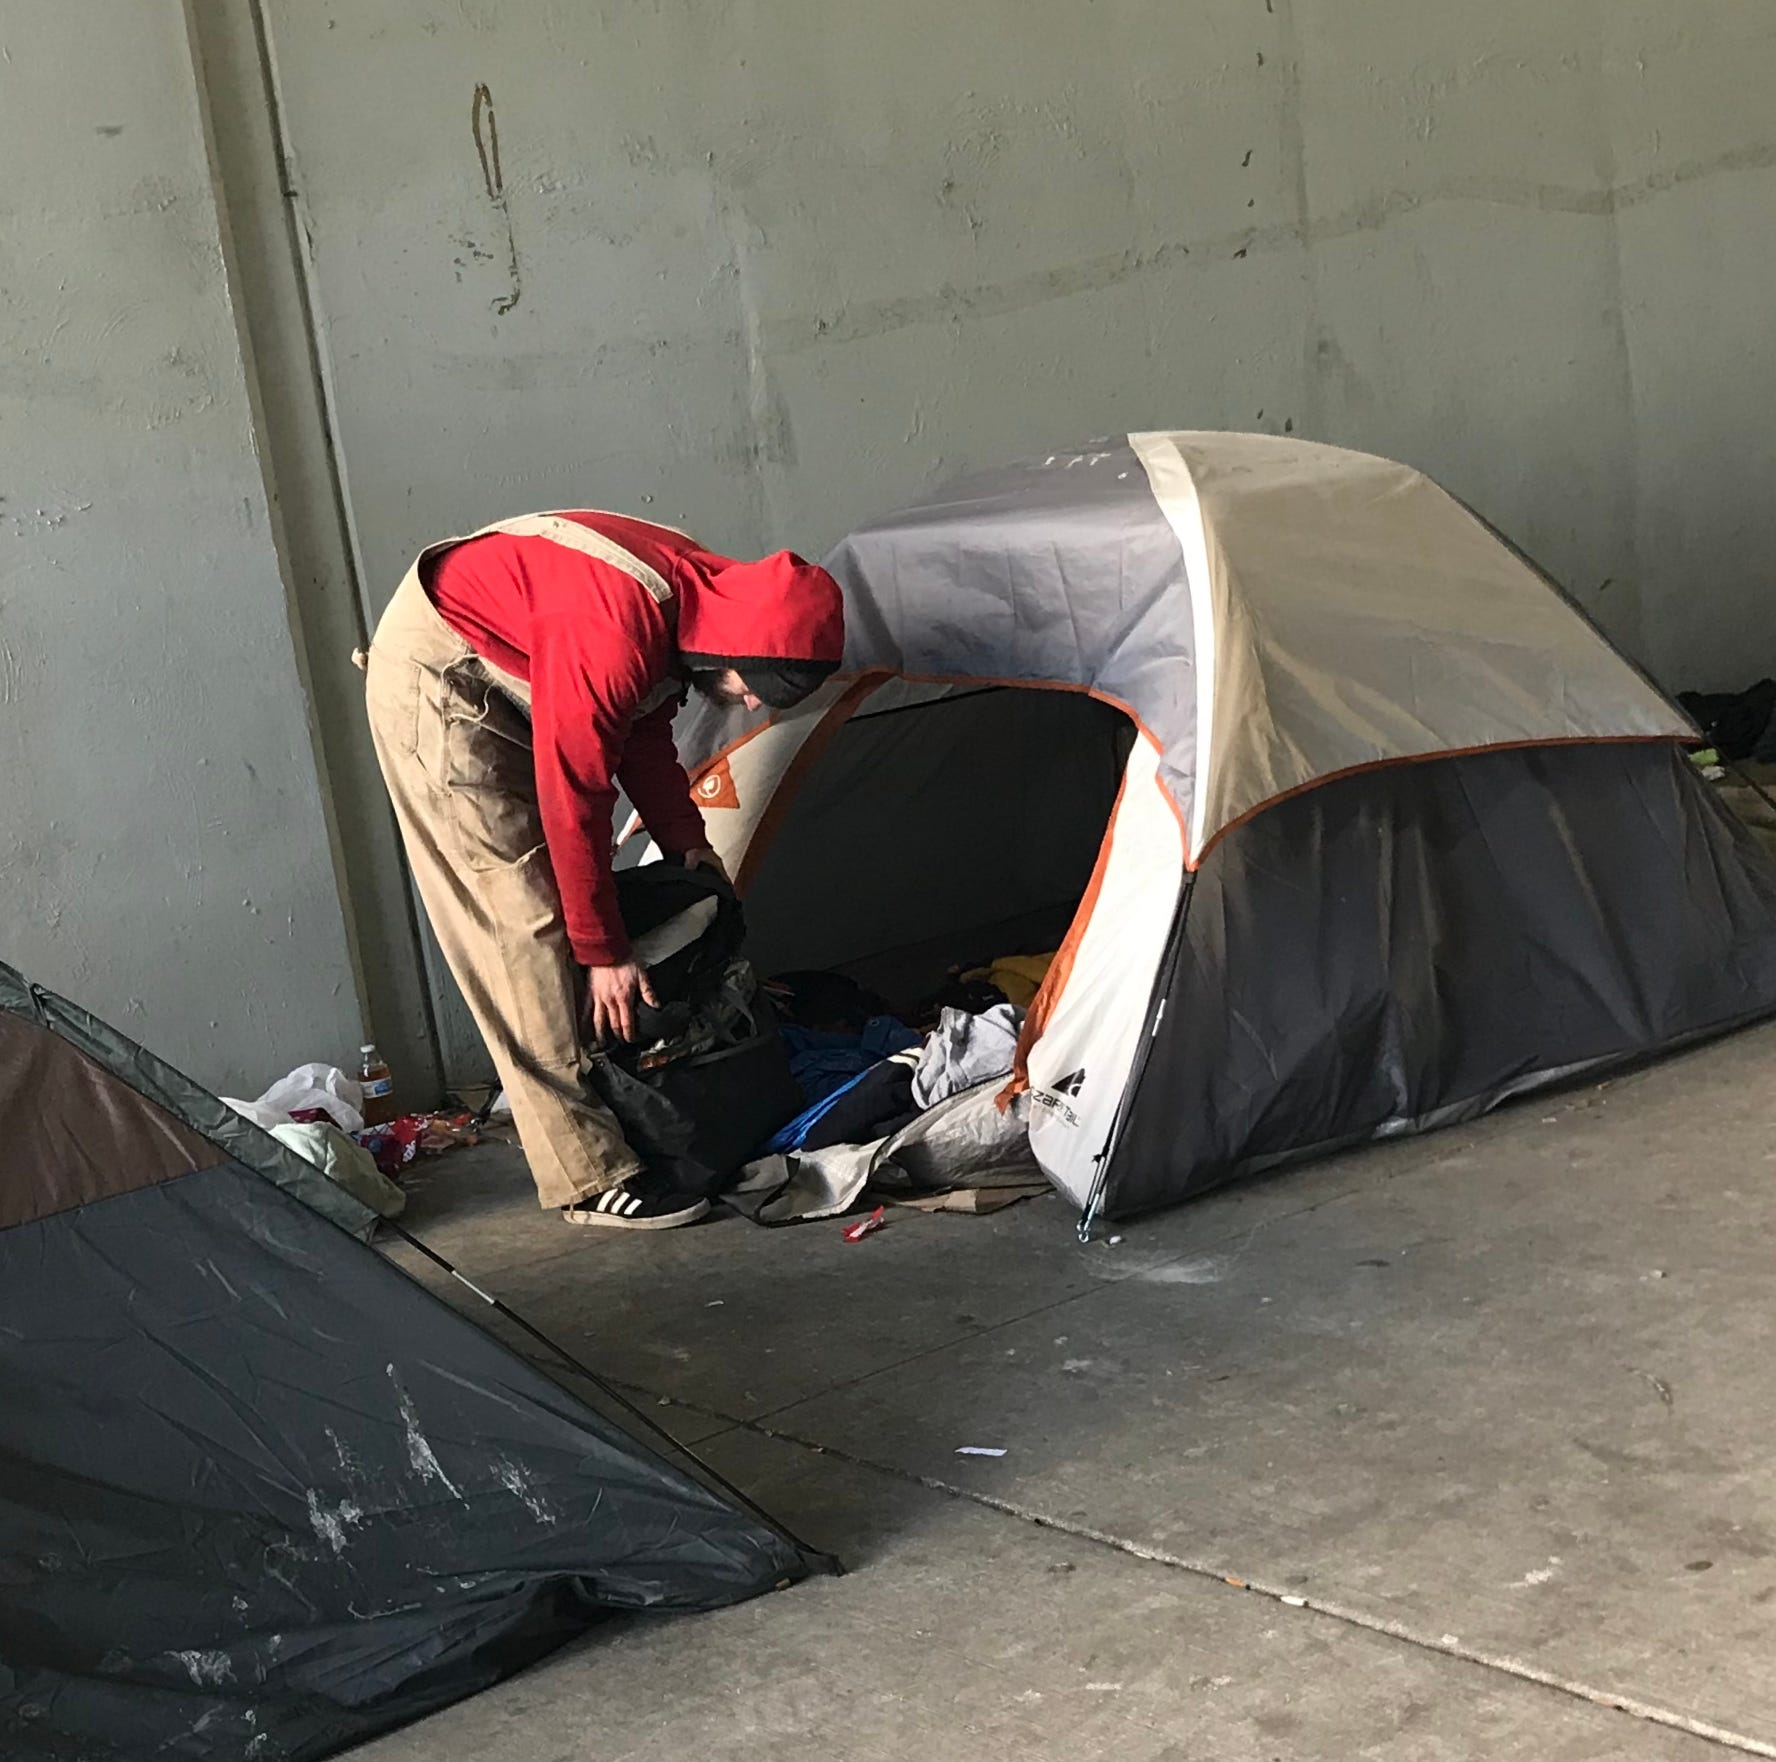 Use your voice to support Louisville's homeless and protect public safety